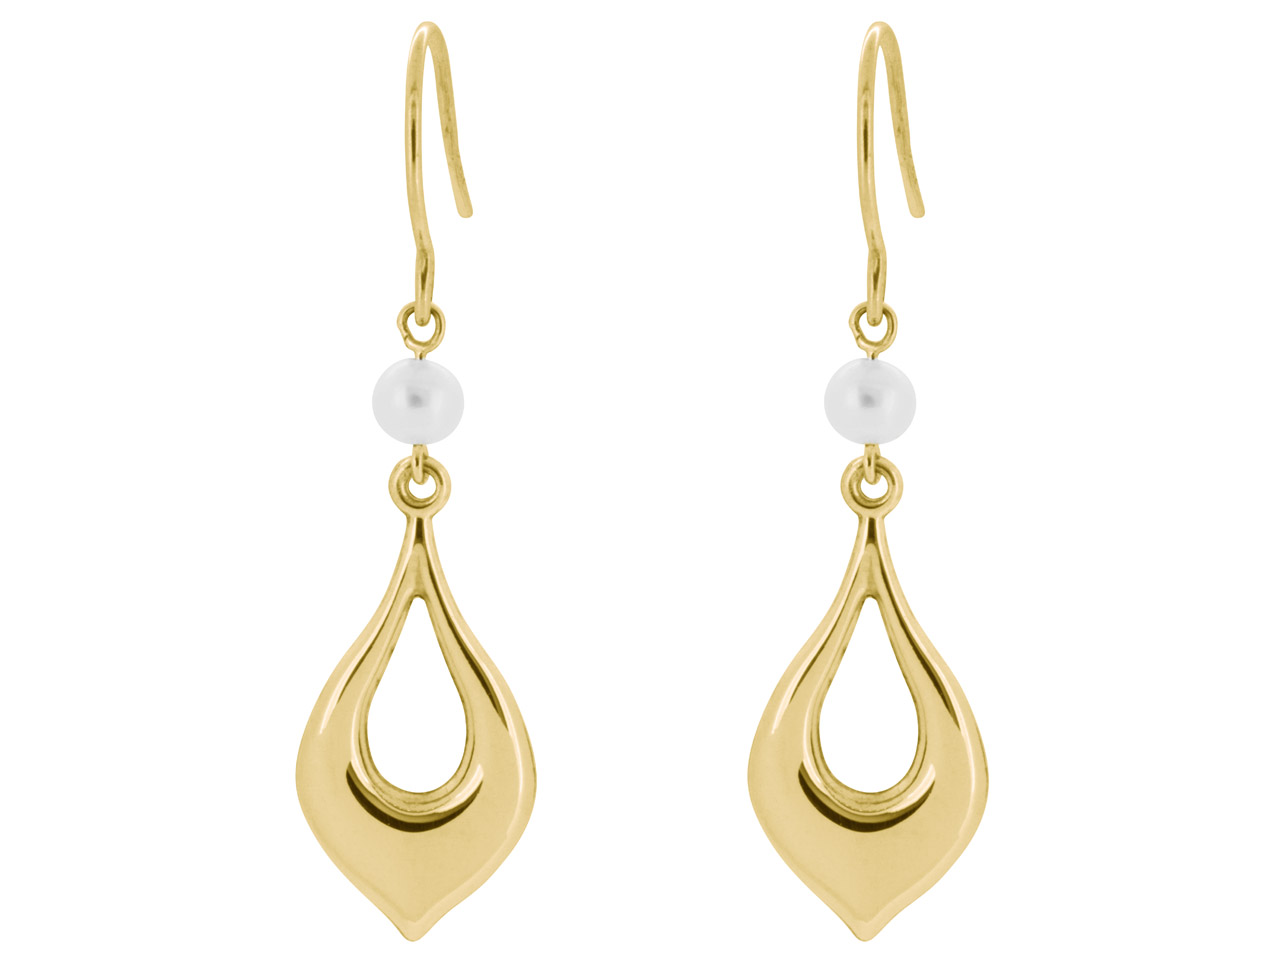 9ct Yellow Gold Pearl Drop Earrings Set With 4mm Pearls